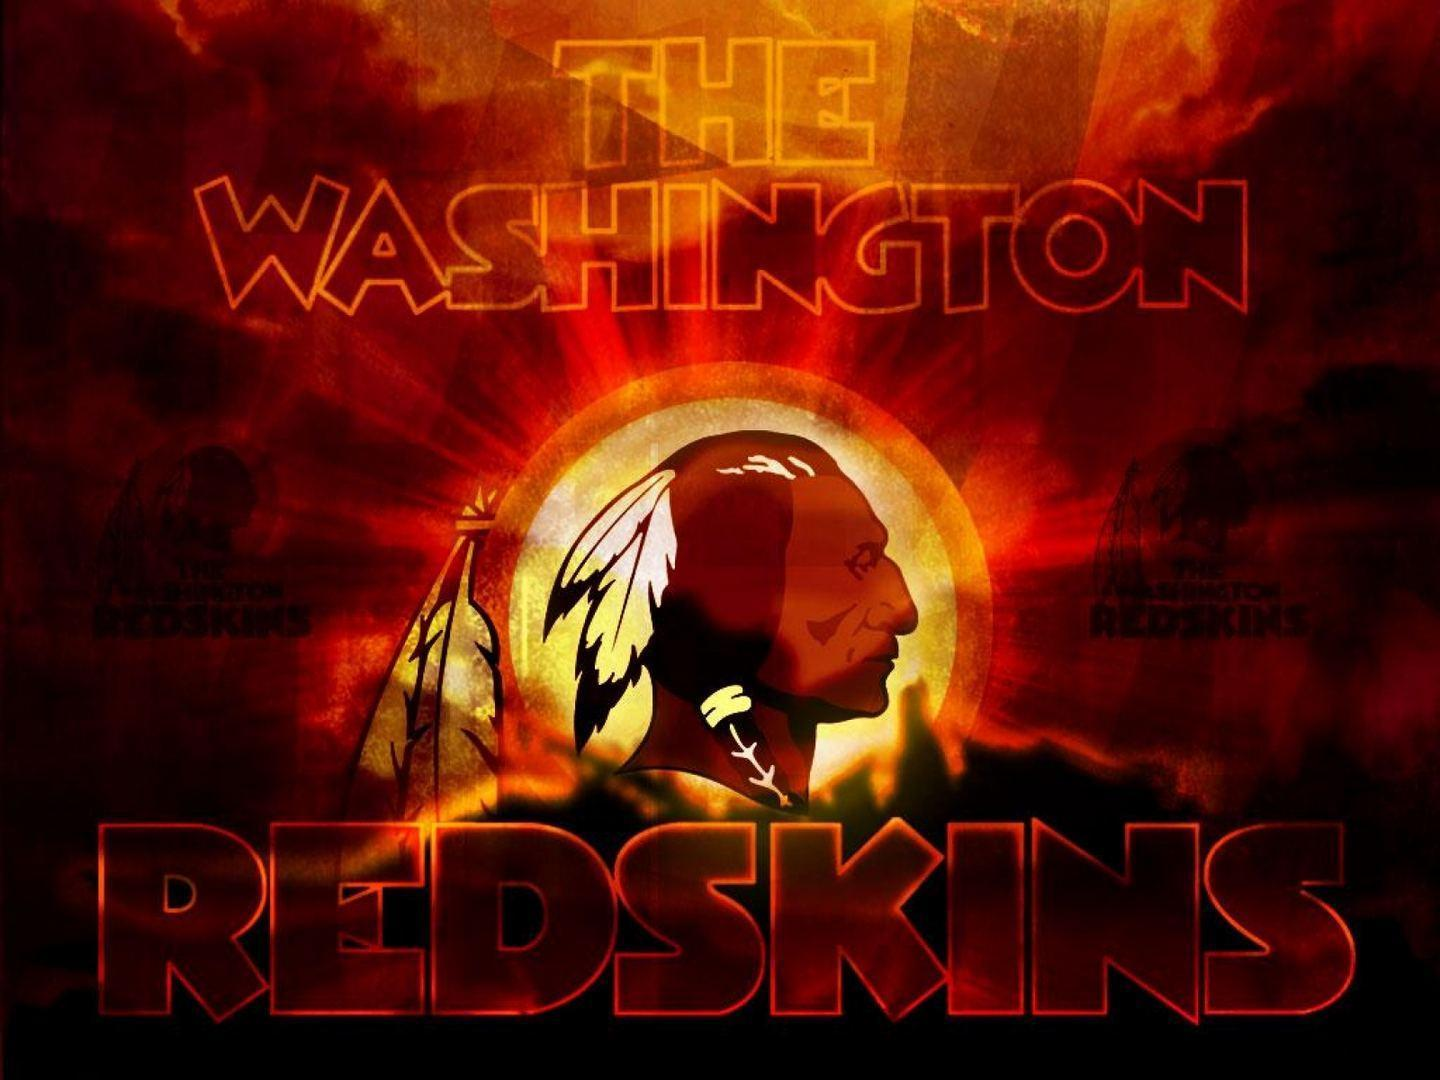 Redskins wallpapers 2016 wallpaper cave washington redskins wallpaper hd free download voltagebd Choice Image